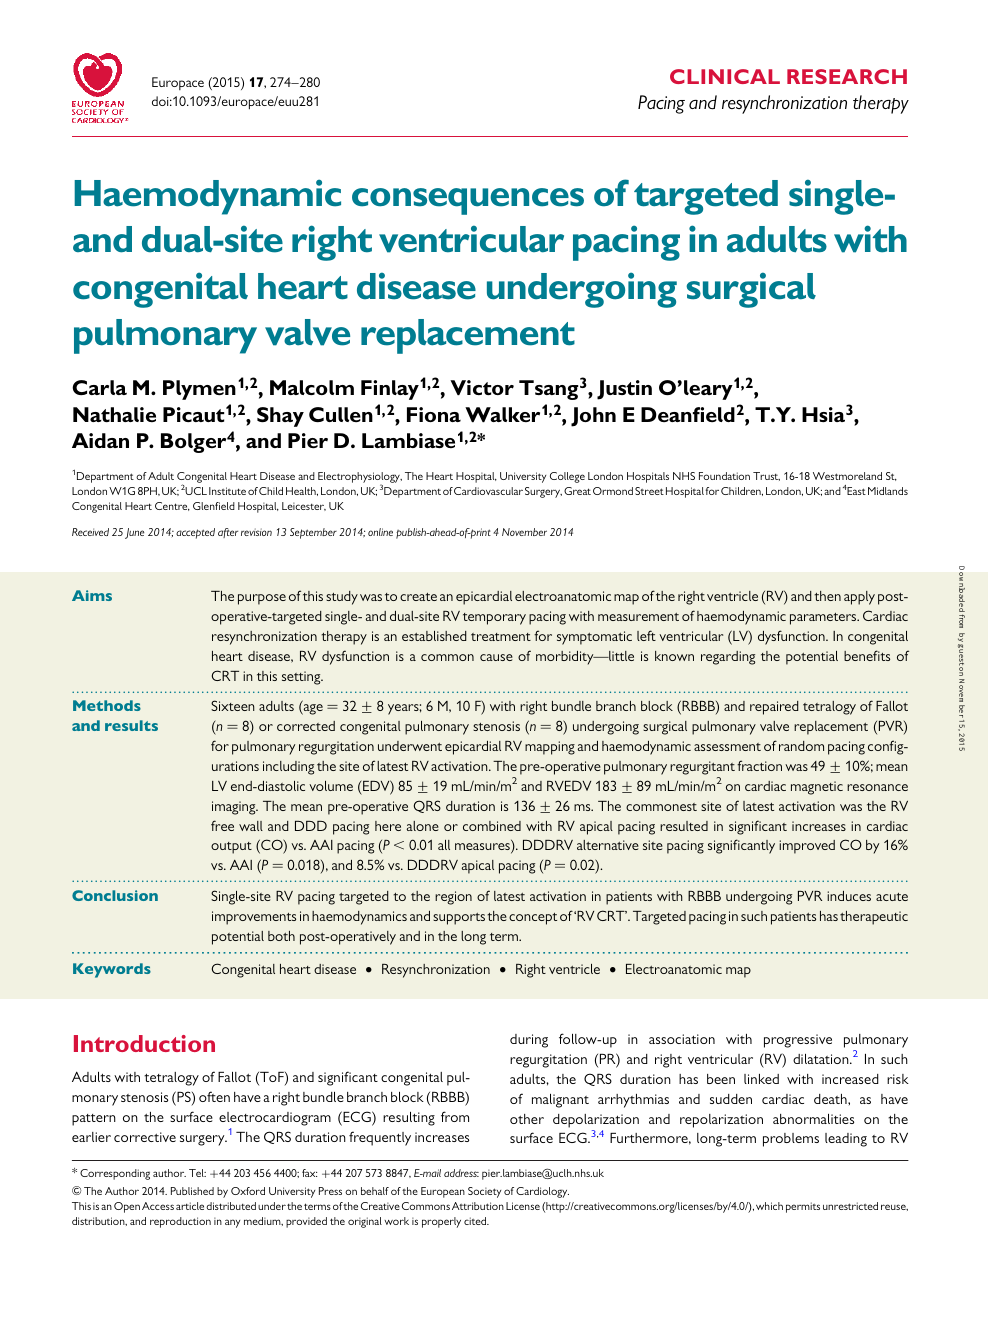 Haemodynamic consequences of targeted single- and dual-site right  ventricular pacing in adults with congenital heart disease undergoing  surgical pulmonary valve replacement – topic of research paper in Clinical  medicine. Download scholarly article